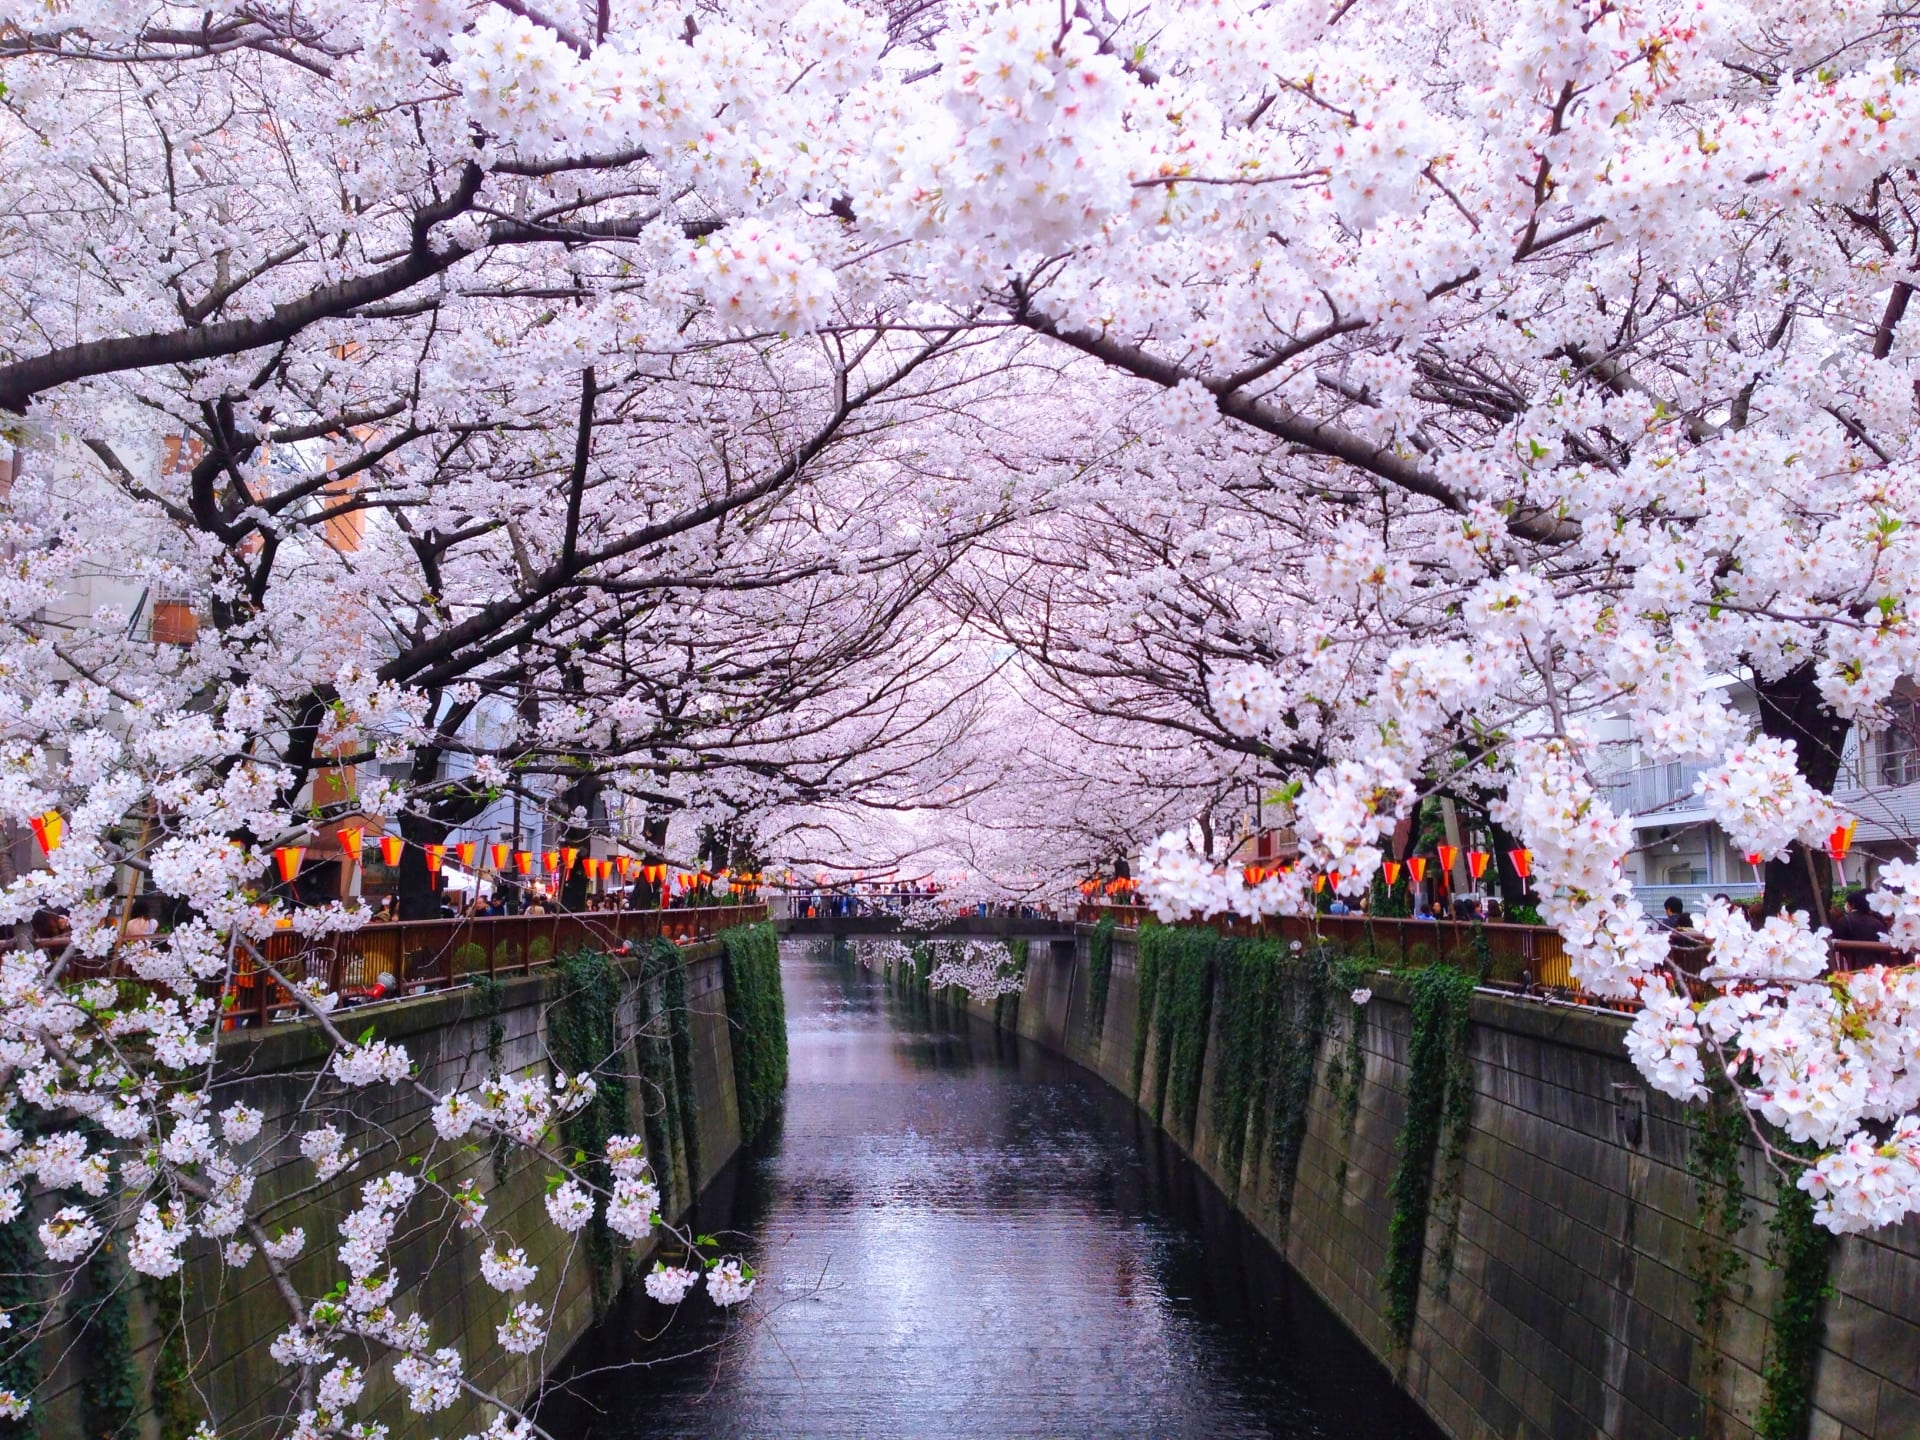 2020 Japan Cherry Blossom Festival Cancellations due to Coronavirus (Covid-19)